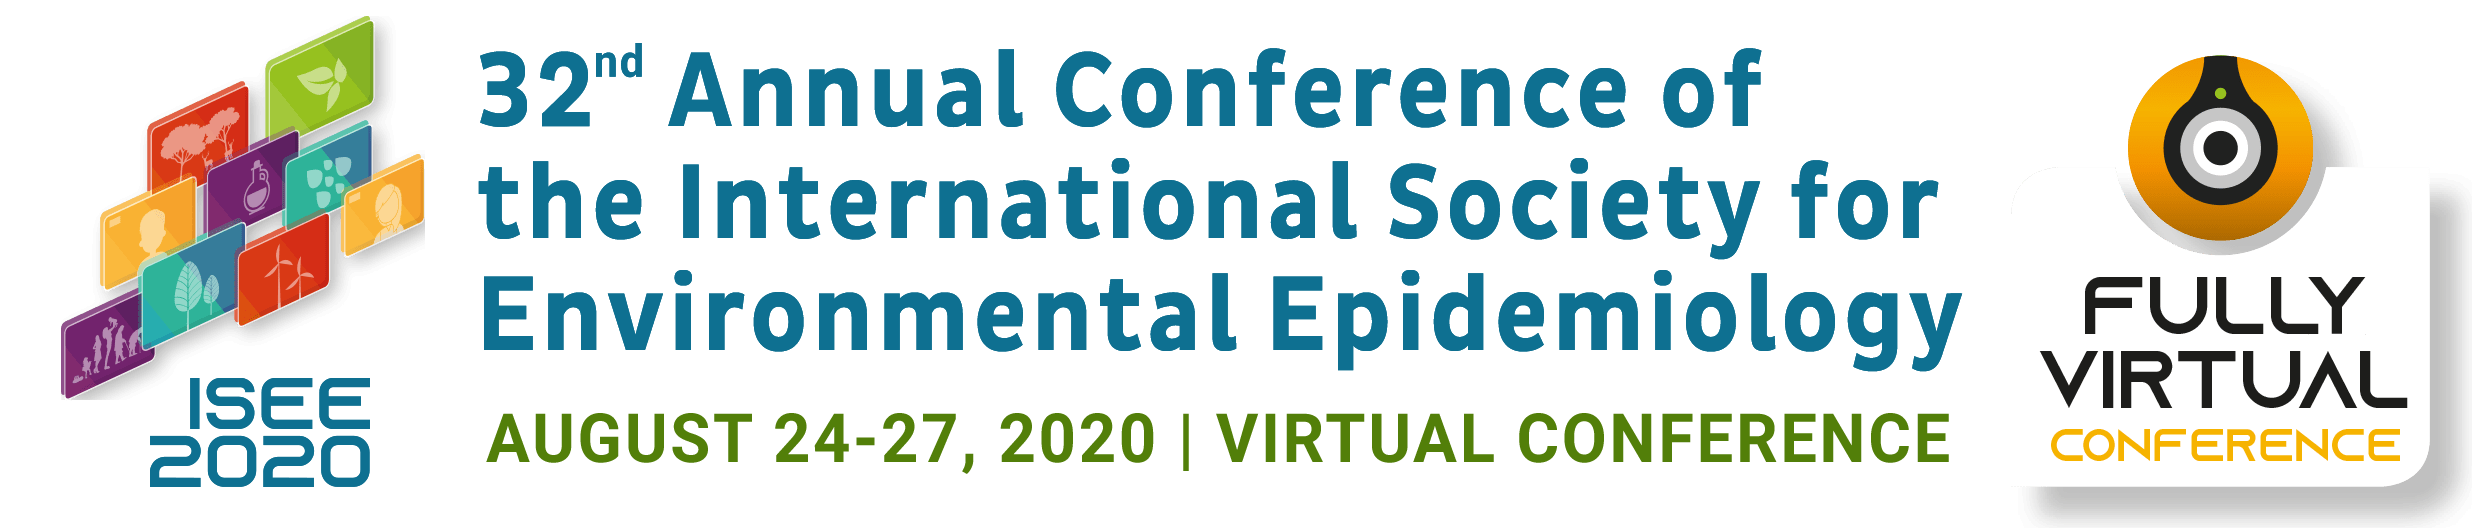 ISEE 2020 Annual Conference – Virtual meeting